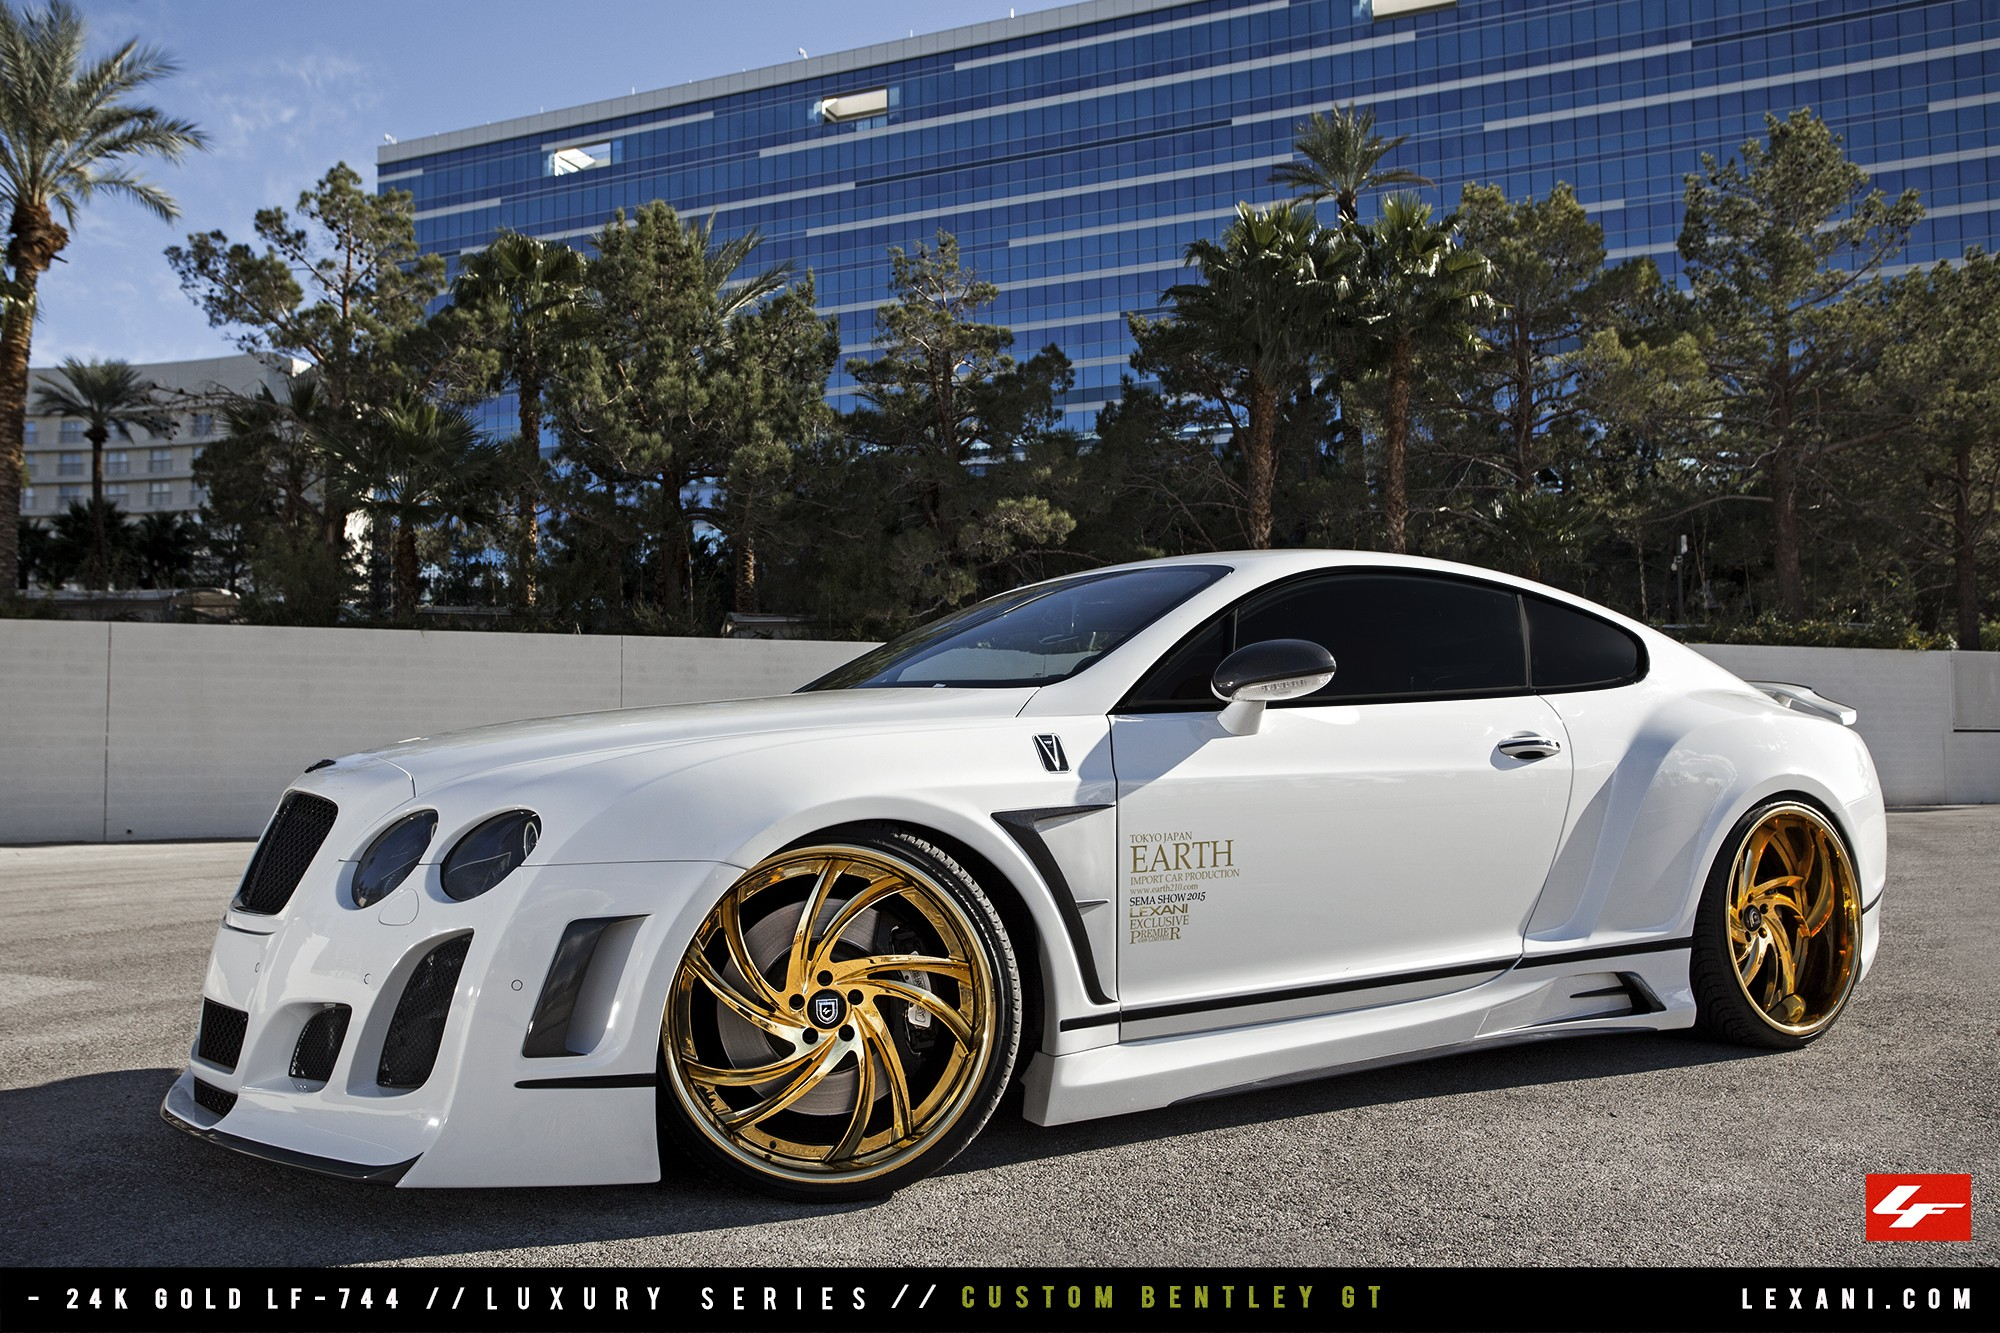 Custom Bentley GT on 24K Gold LF-744